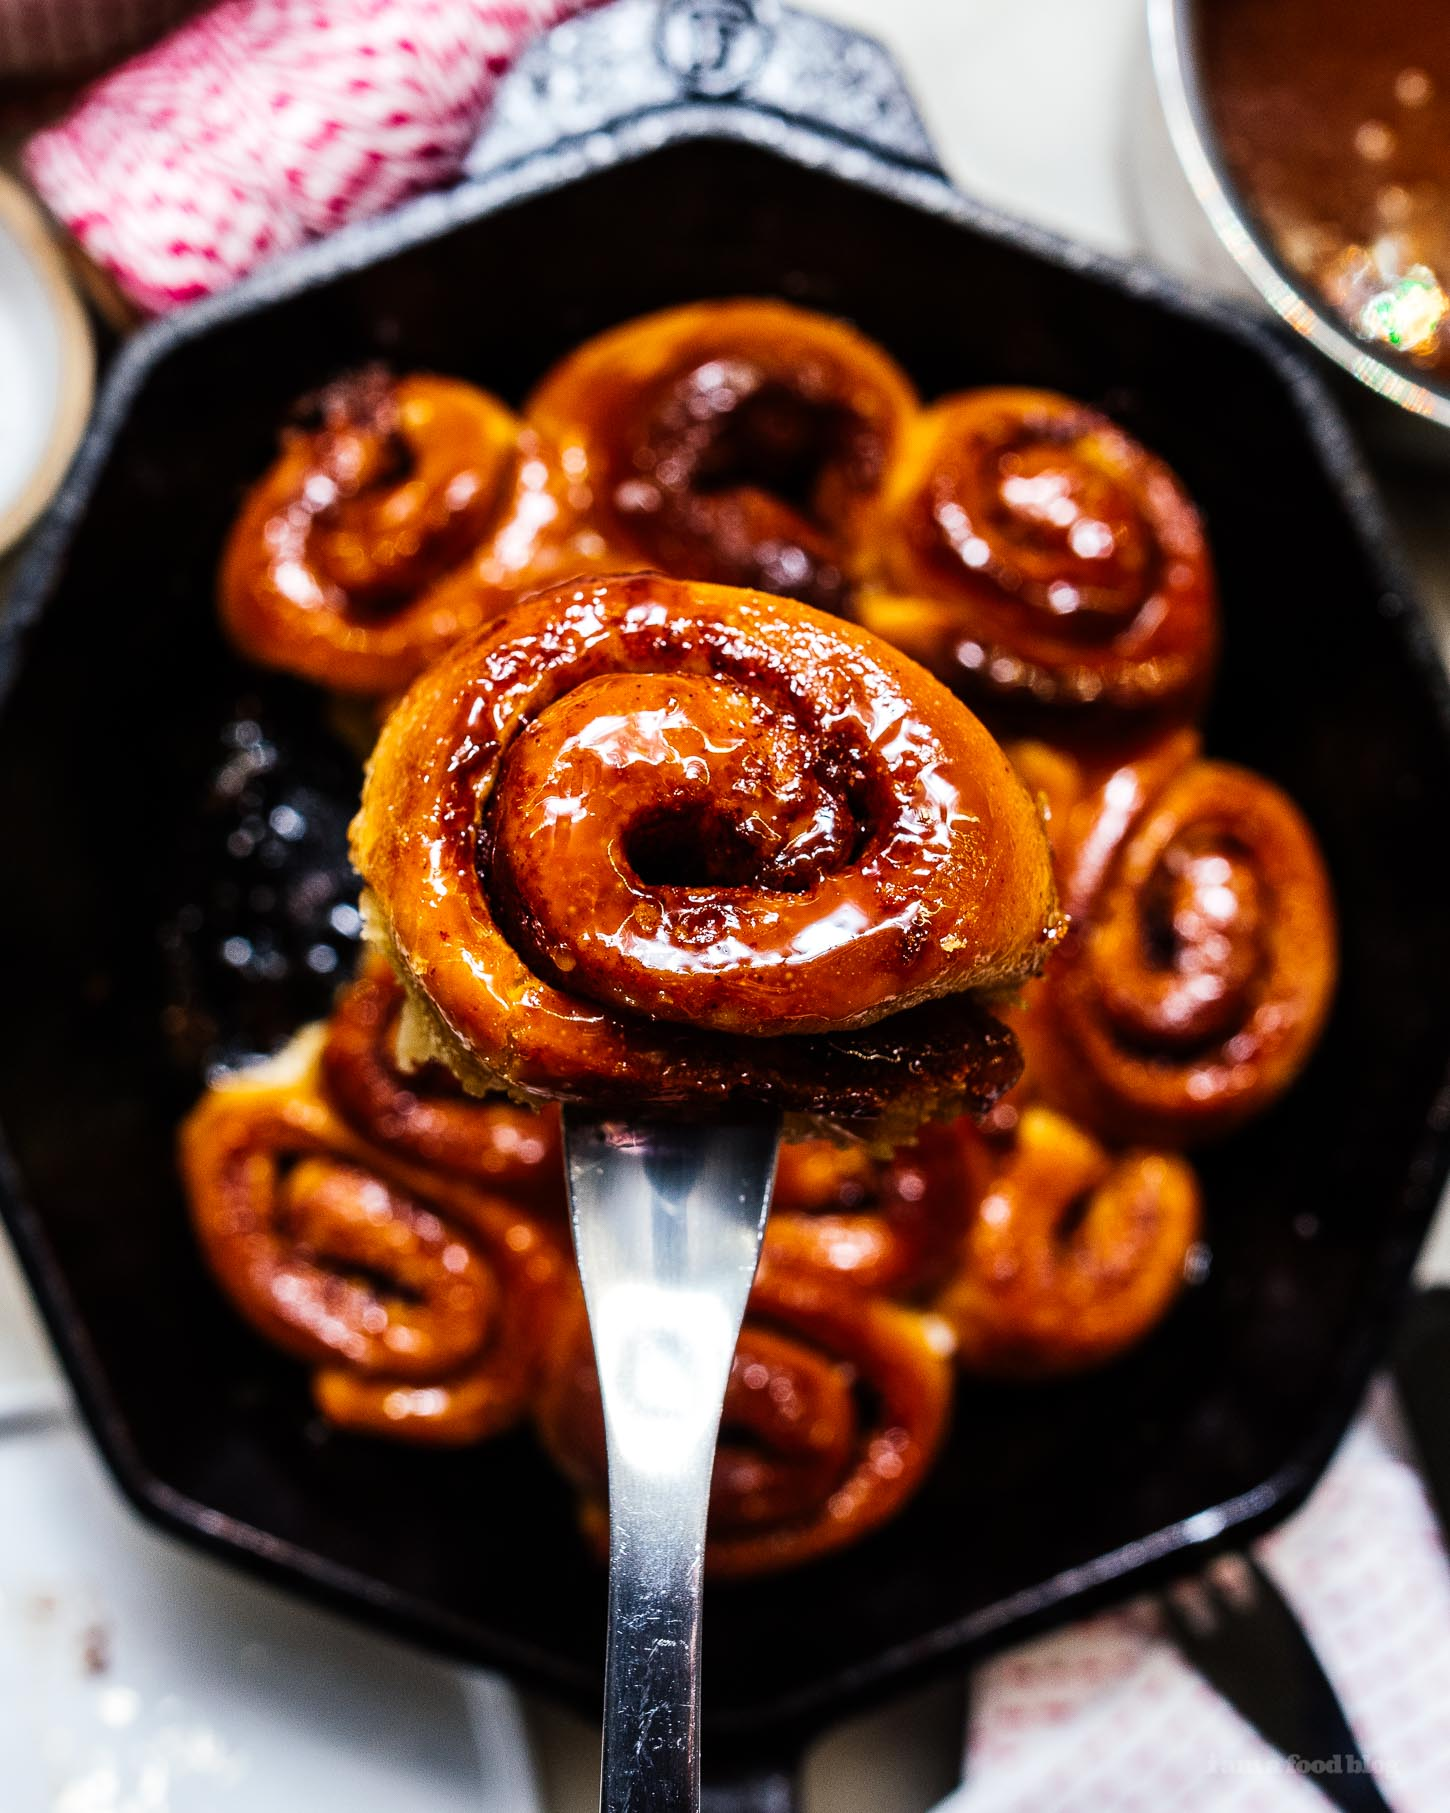 small batch mini sticky bun cinnamon roll monkey bread #smallbatch #recipe #baking #stickybun #morningbun #cinnamonrolls #cinnamonbuns #monkeybread #cinnamon